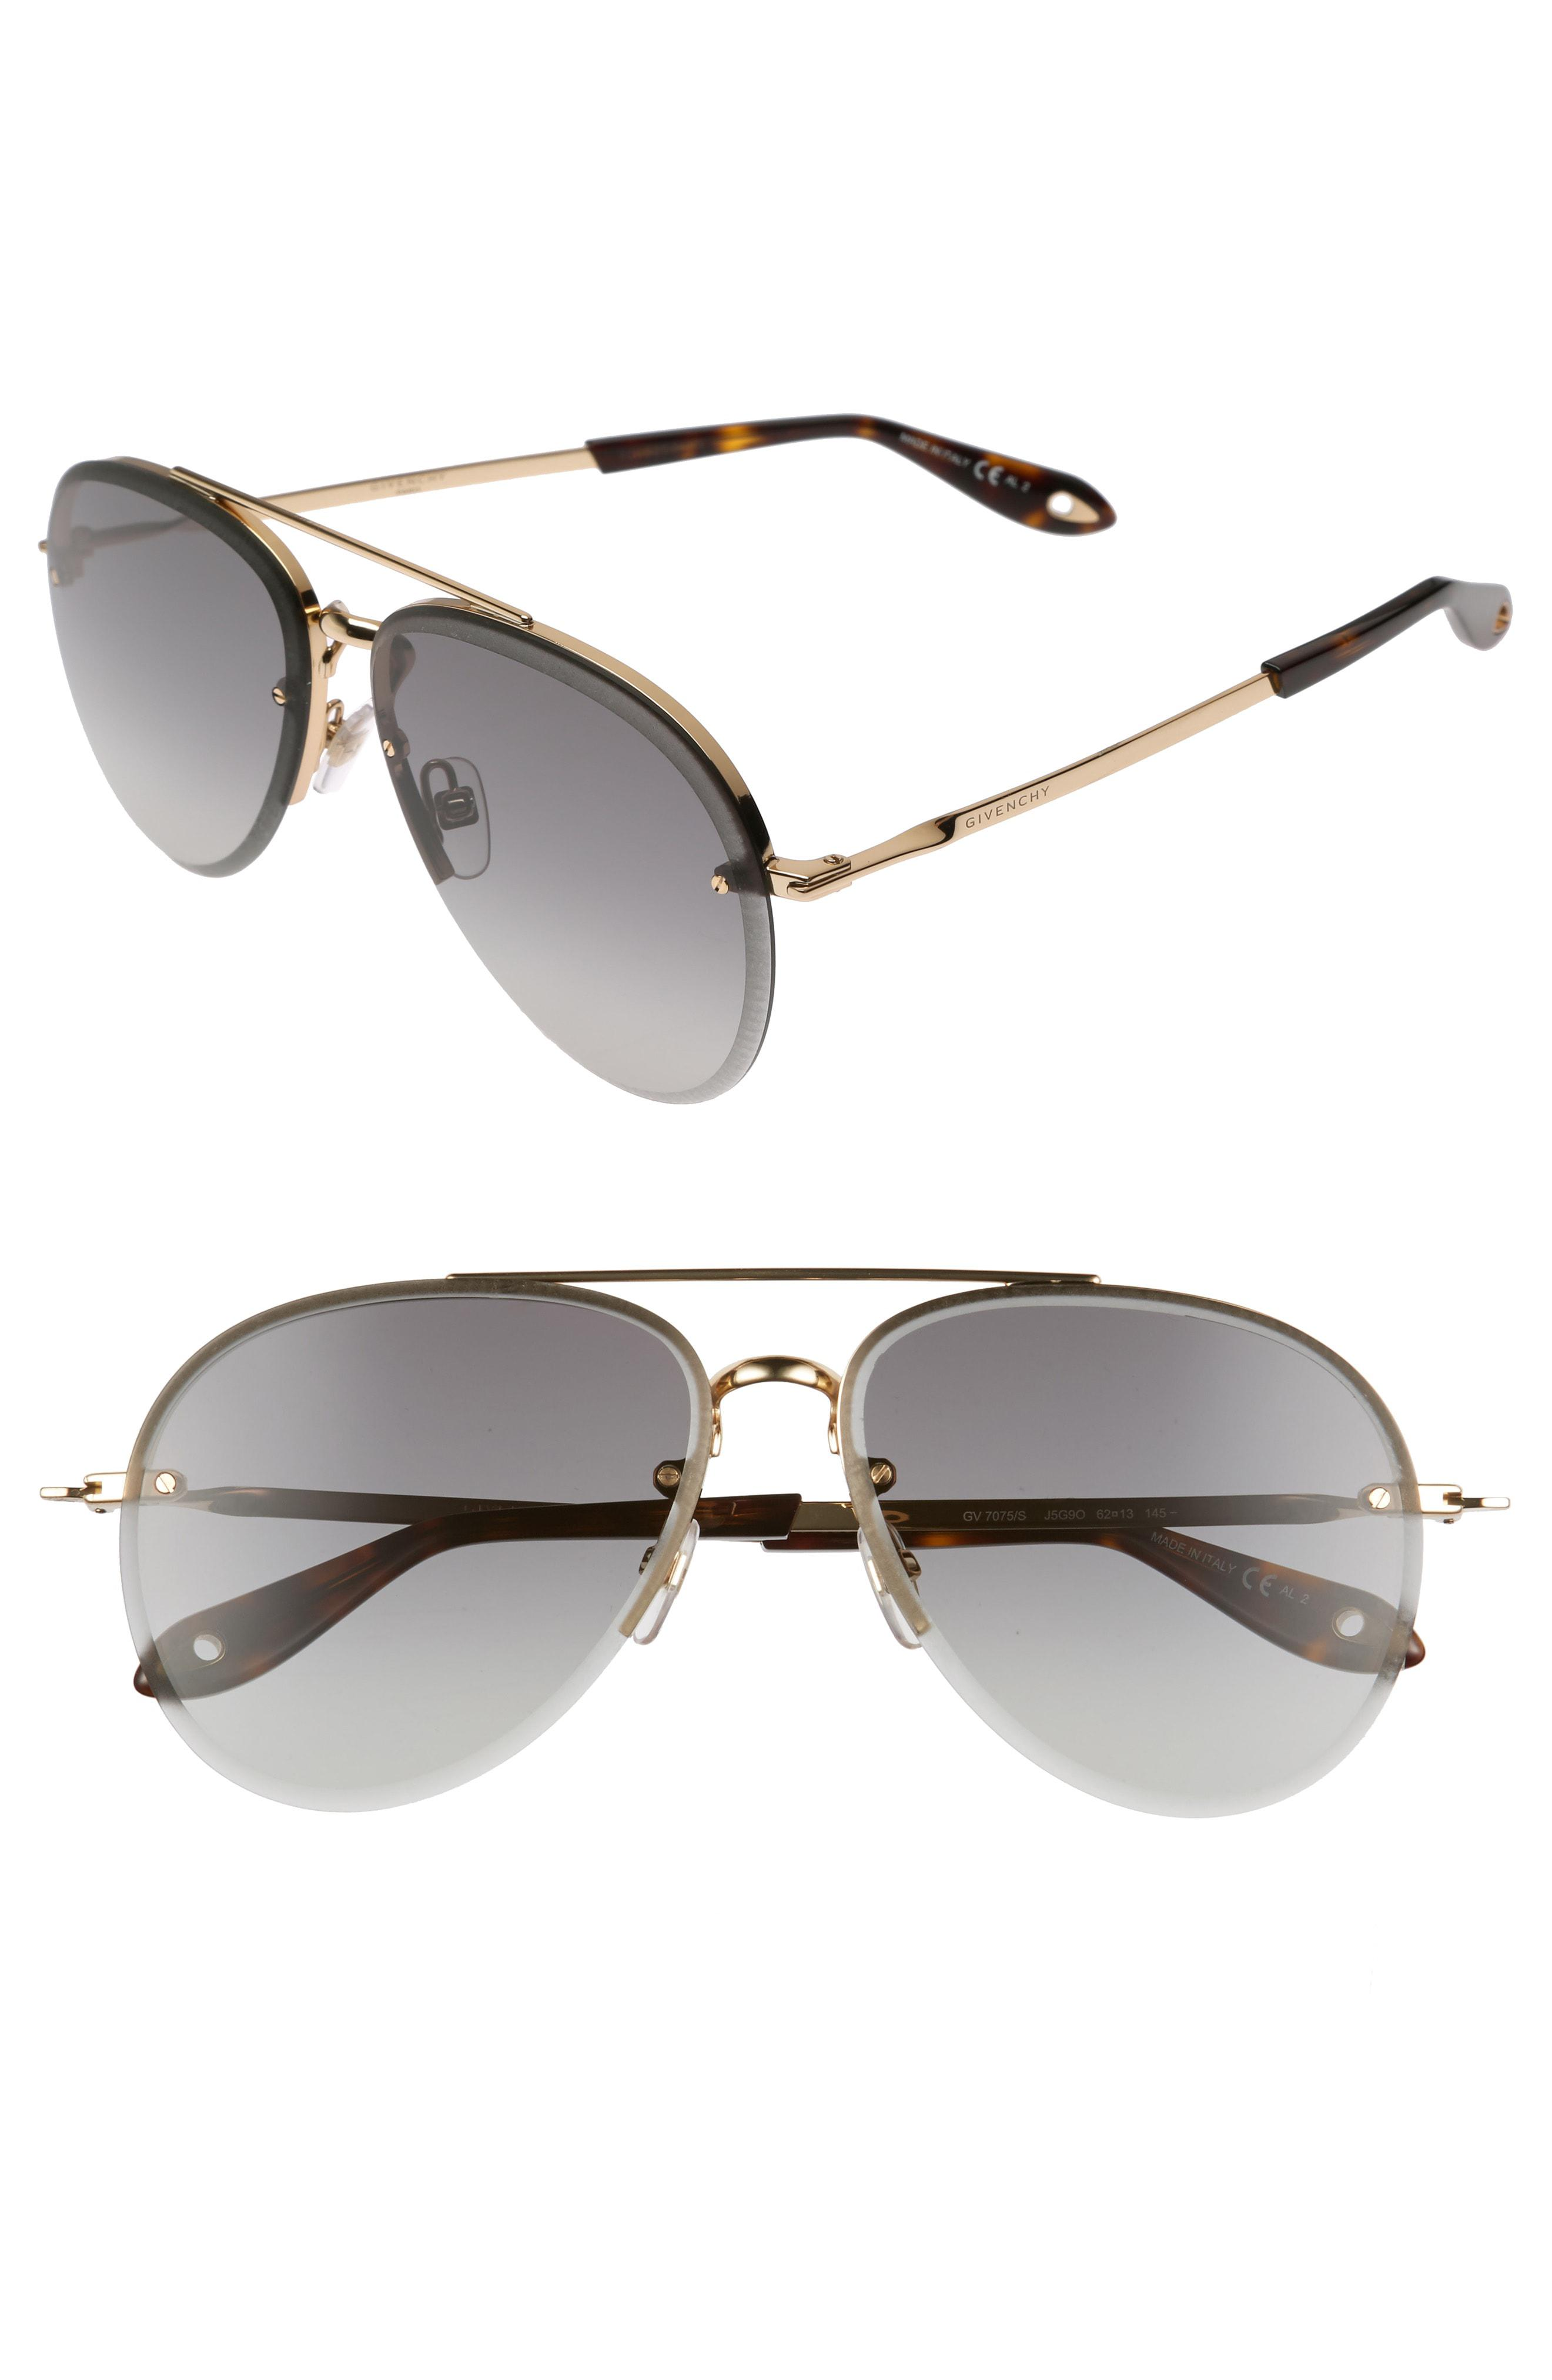 92db95d916 ... best Black Friday deals · Givenchy - Metallic 62mm Oversize Aviator  Sunglasses - - Lyst. View fullscreen